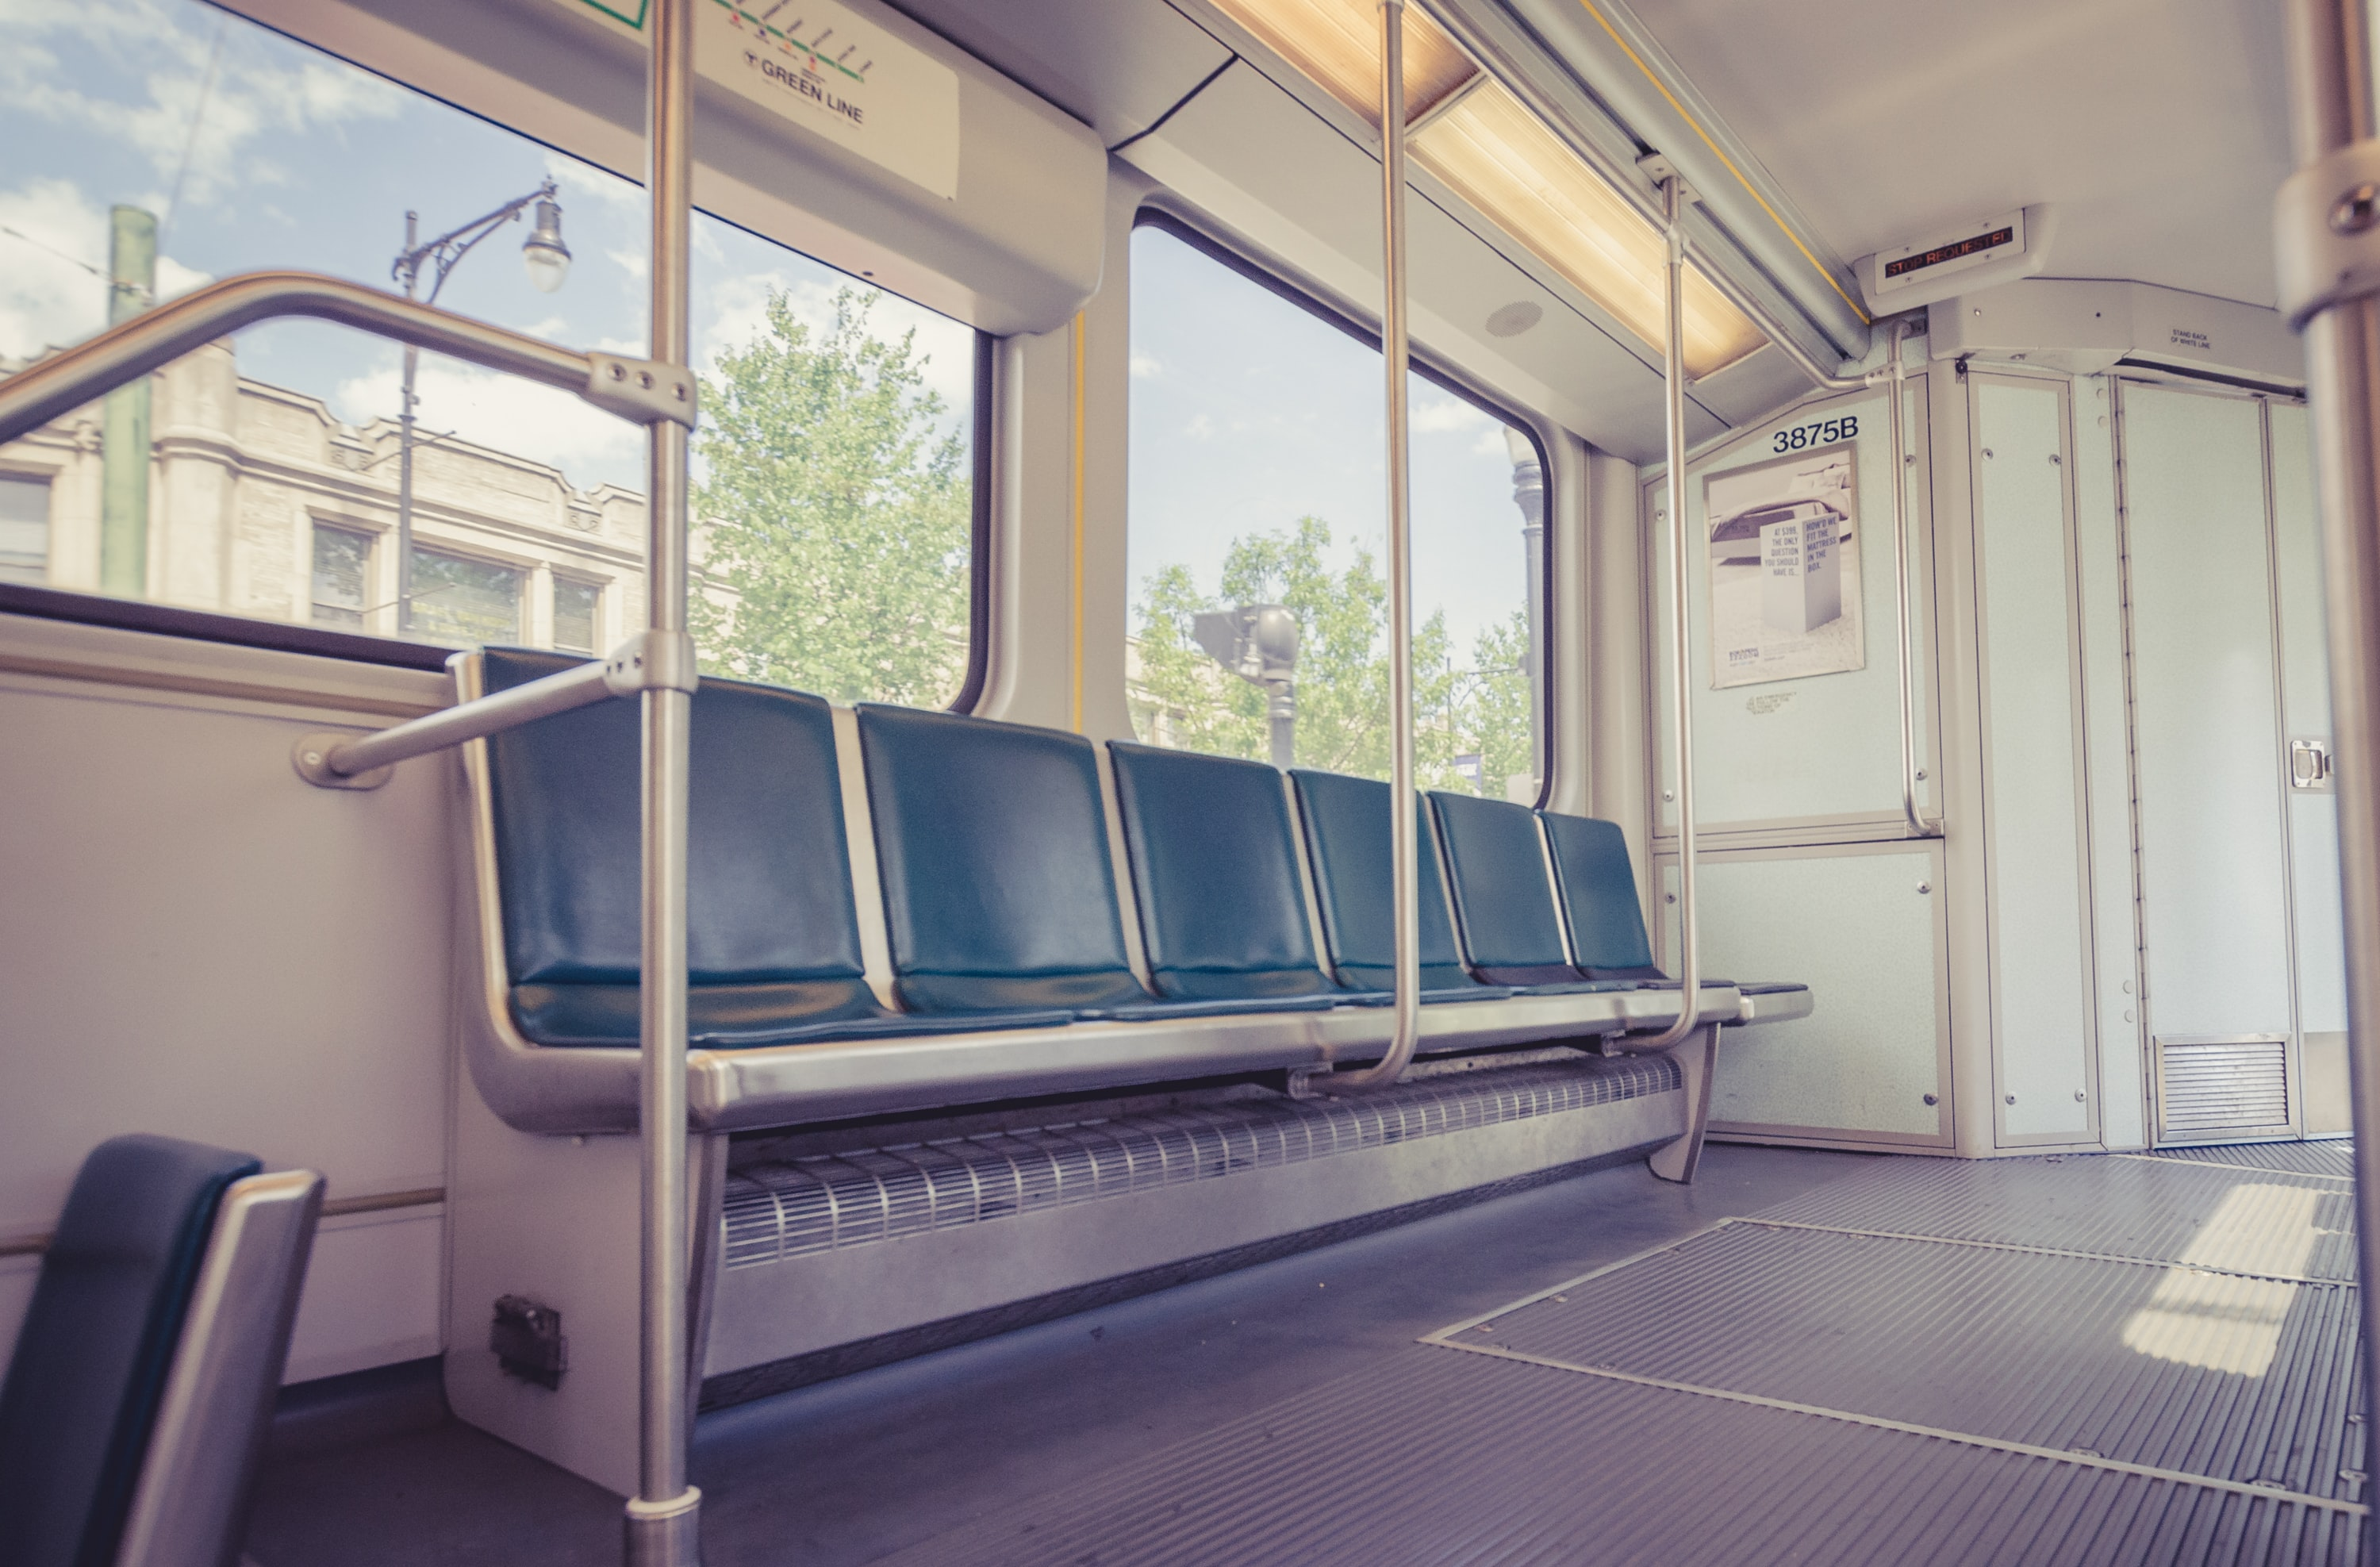 A row of seats on an MBTA green line train car. Photo courtesy of Kelly Sikkema on Unsplash.